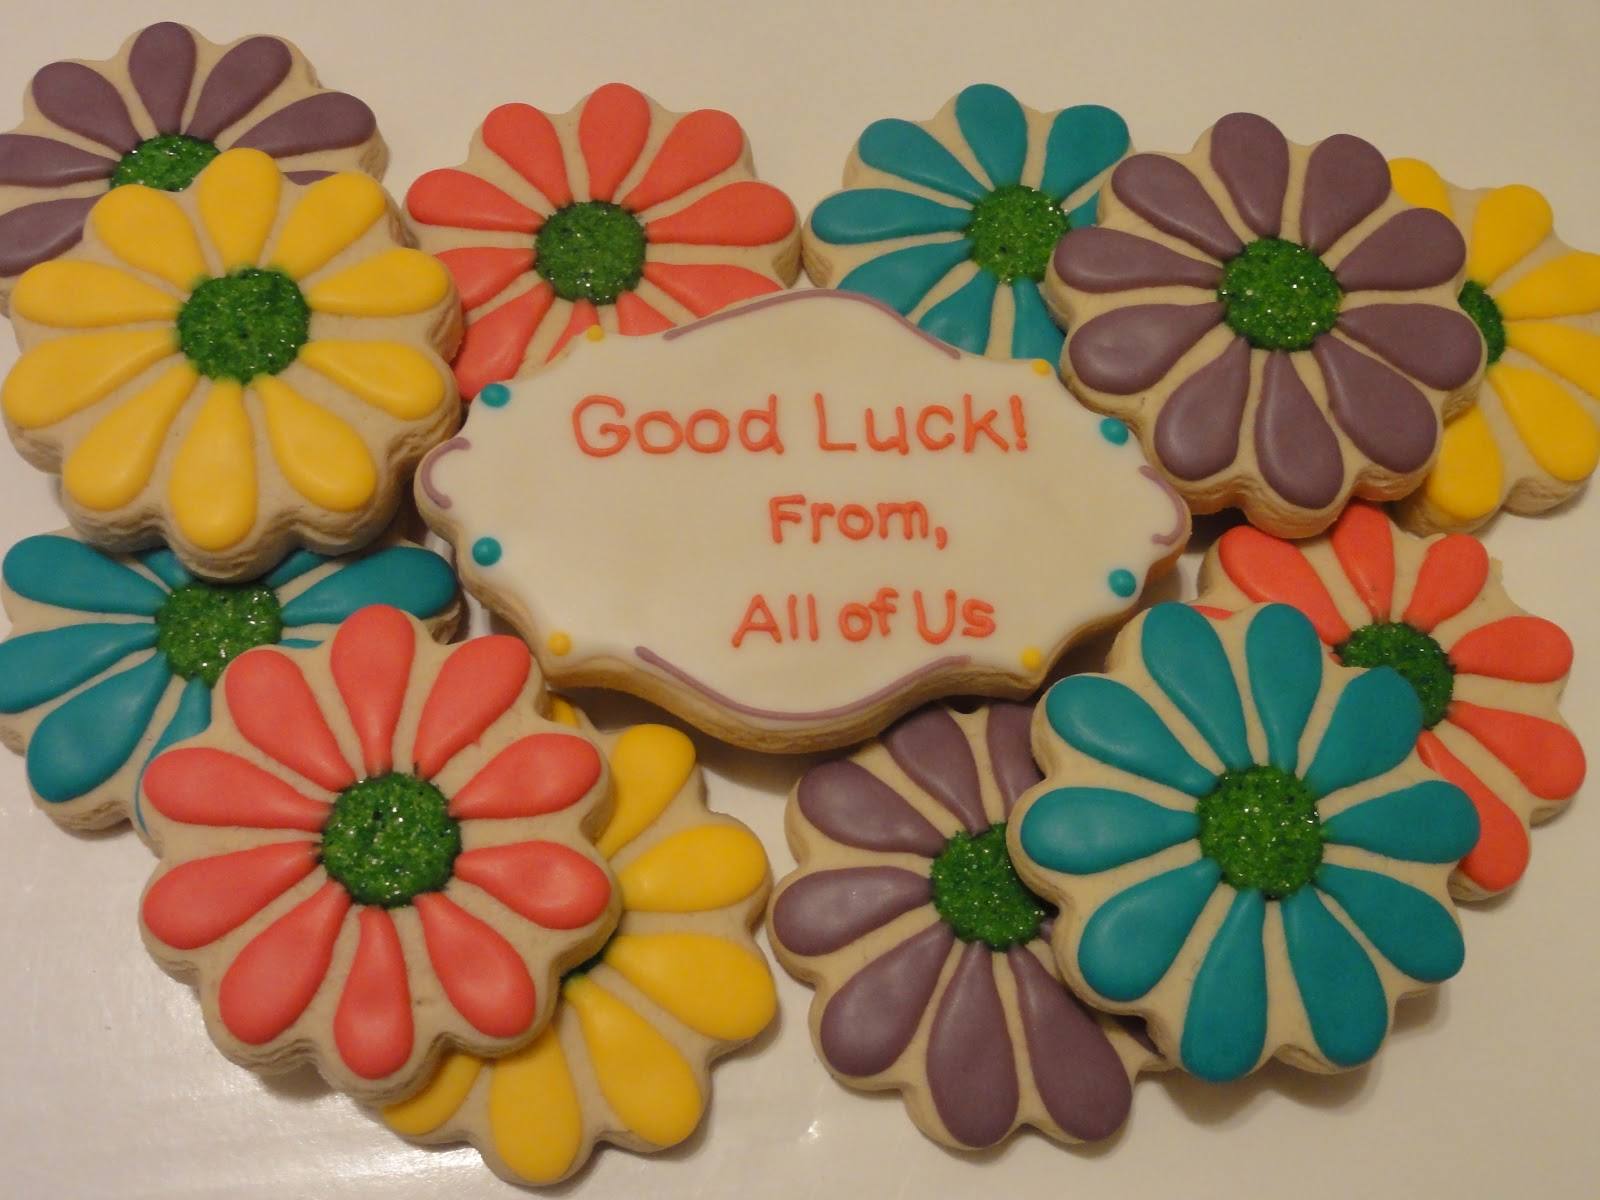 The Cookie Puzzle: Some Simple Flowers